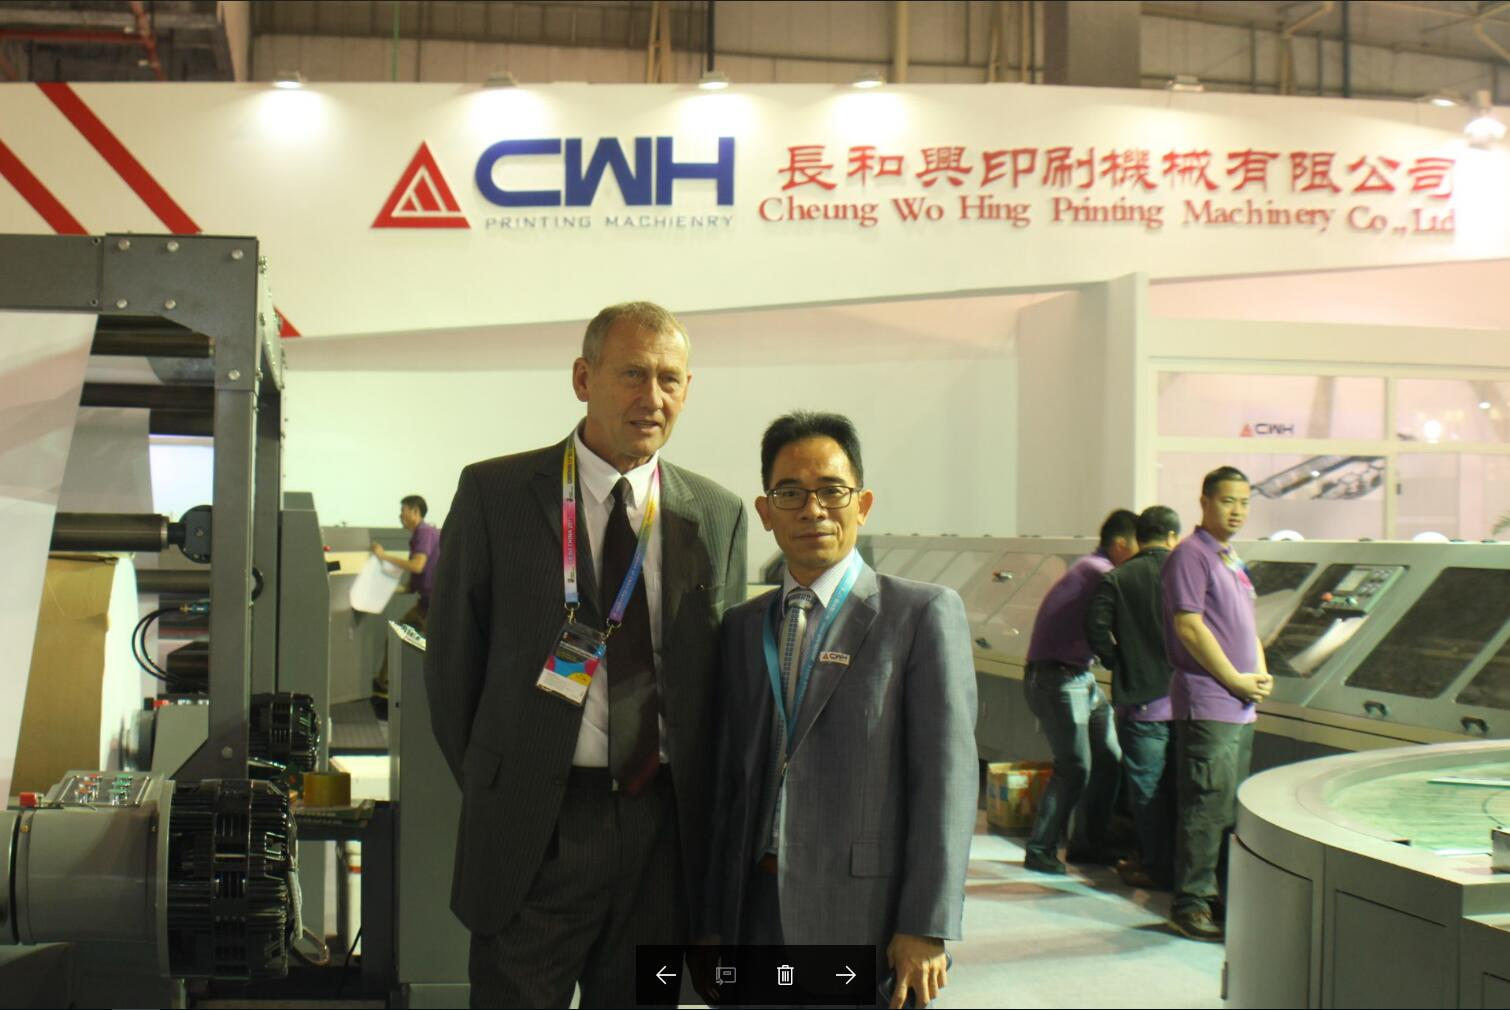 Cheung wo hing printing machinery co.,ltd